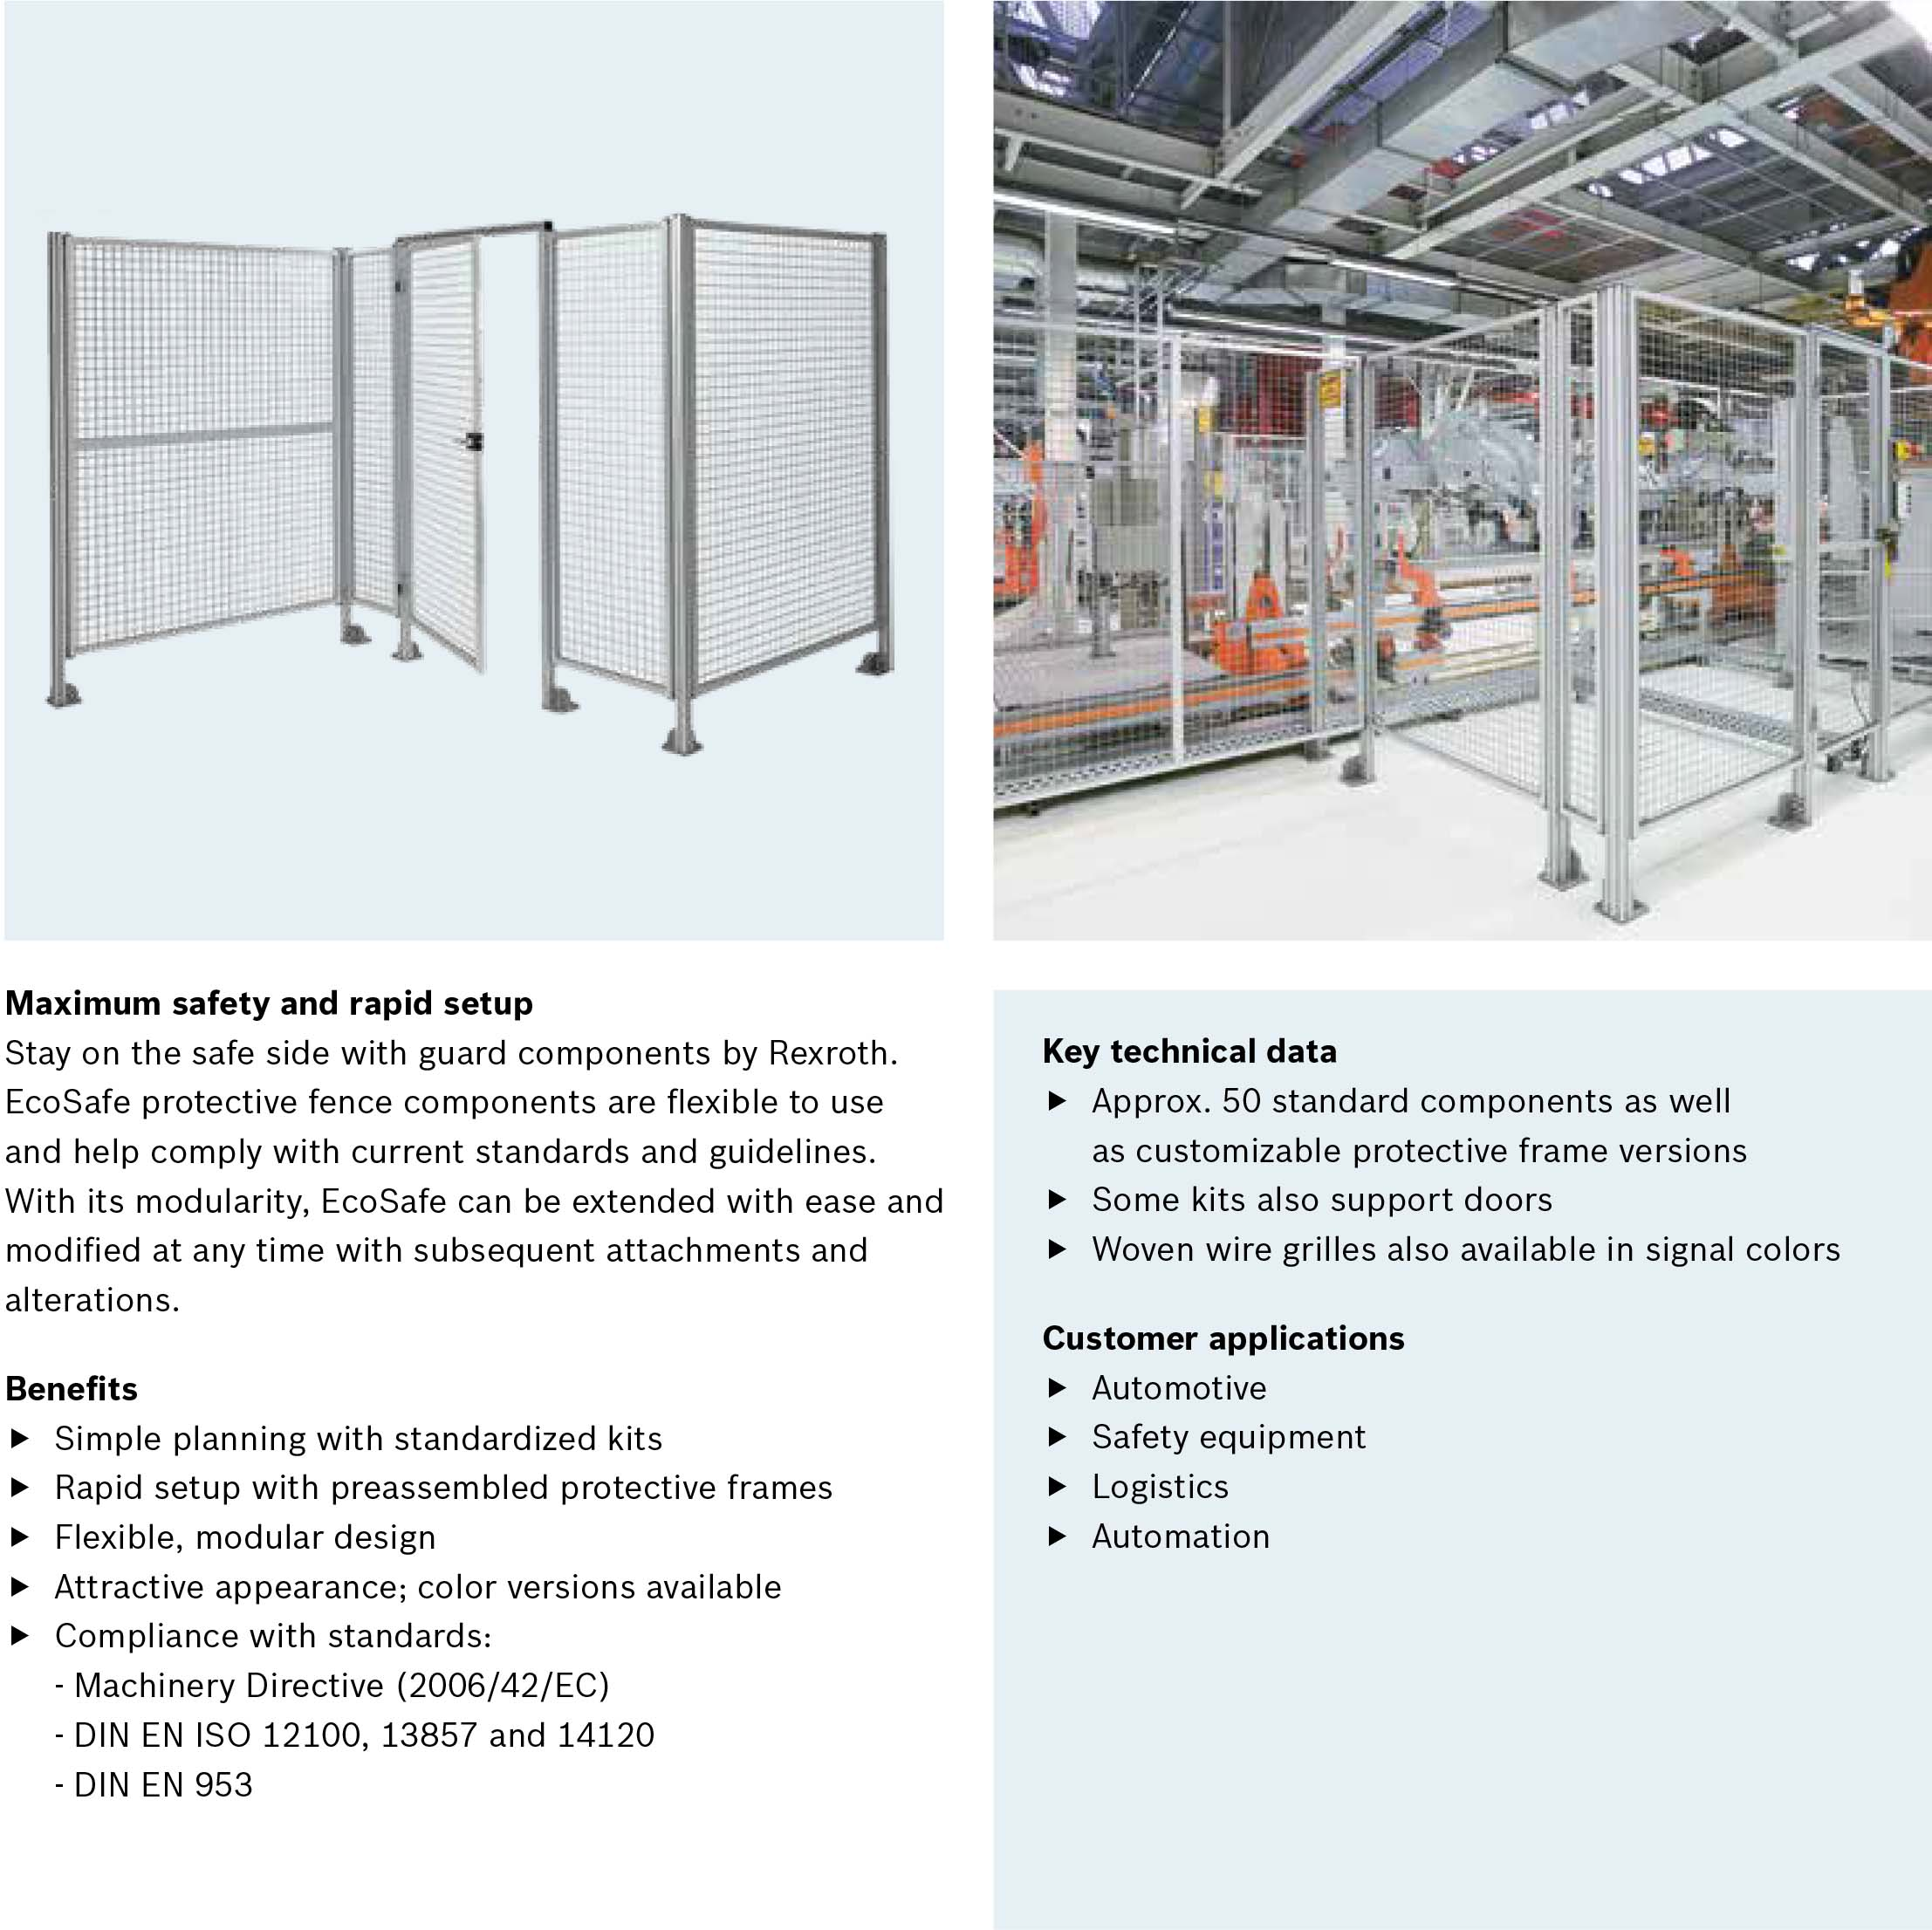 bosch rexroth ecosafe framing